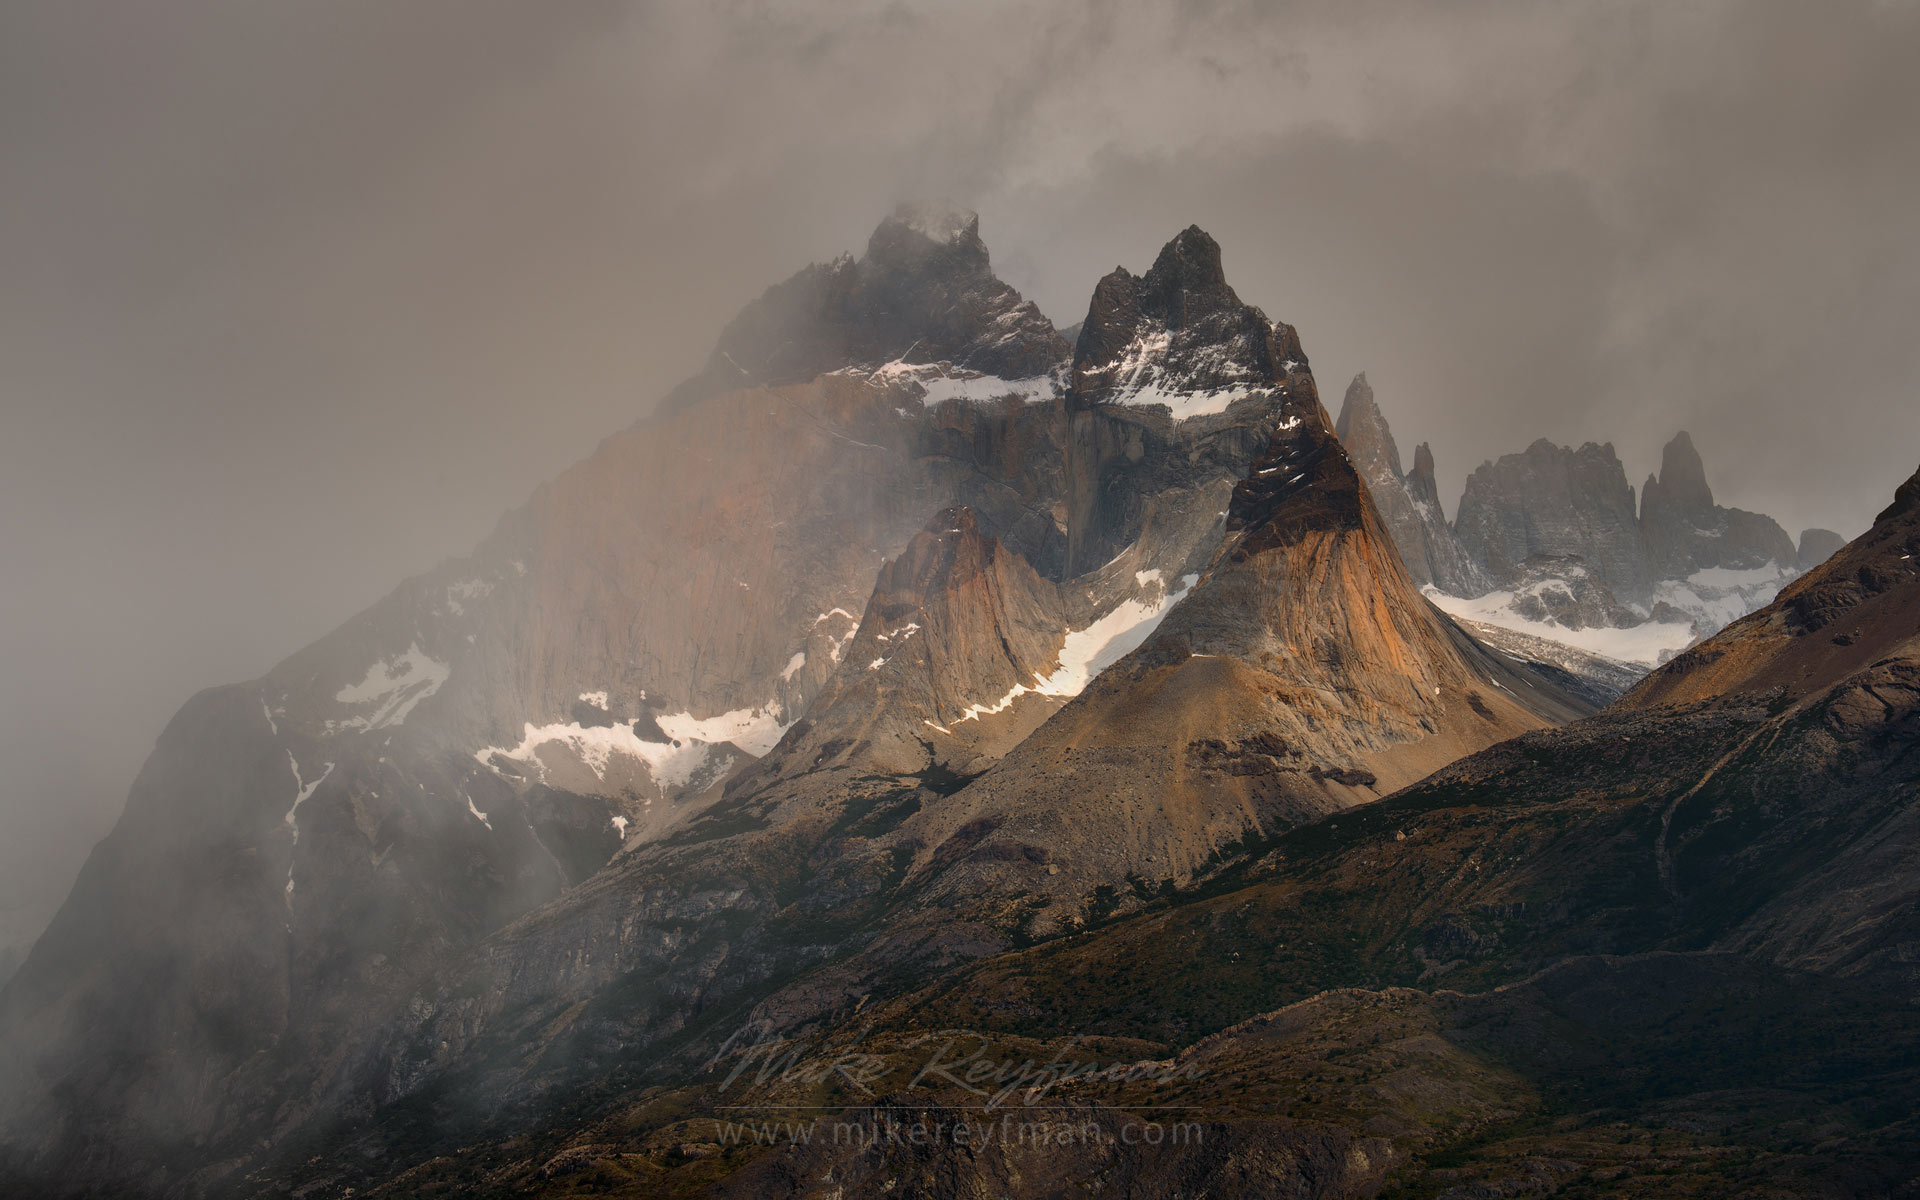 Typical Patagonian weather. Cordillera del Paine. Torres del Paine National Park, Magallanes and Antartica Chilena Region XII, Patagonia, Chile. - Torres-Del-Paine-National-Park-Patagonia-Chile - Mike Reyfman Photography